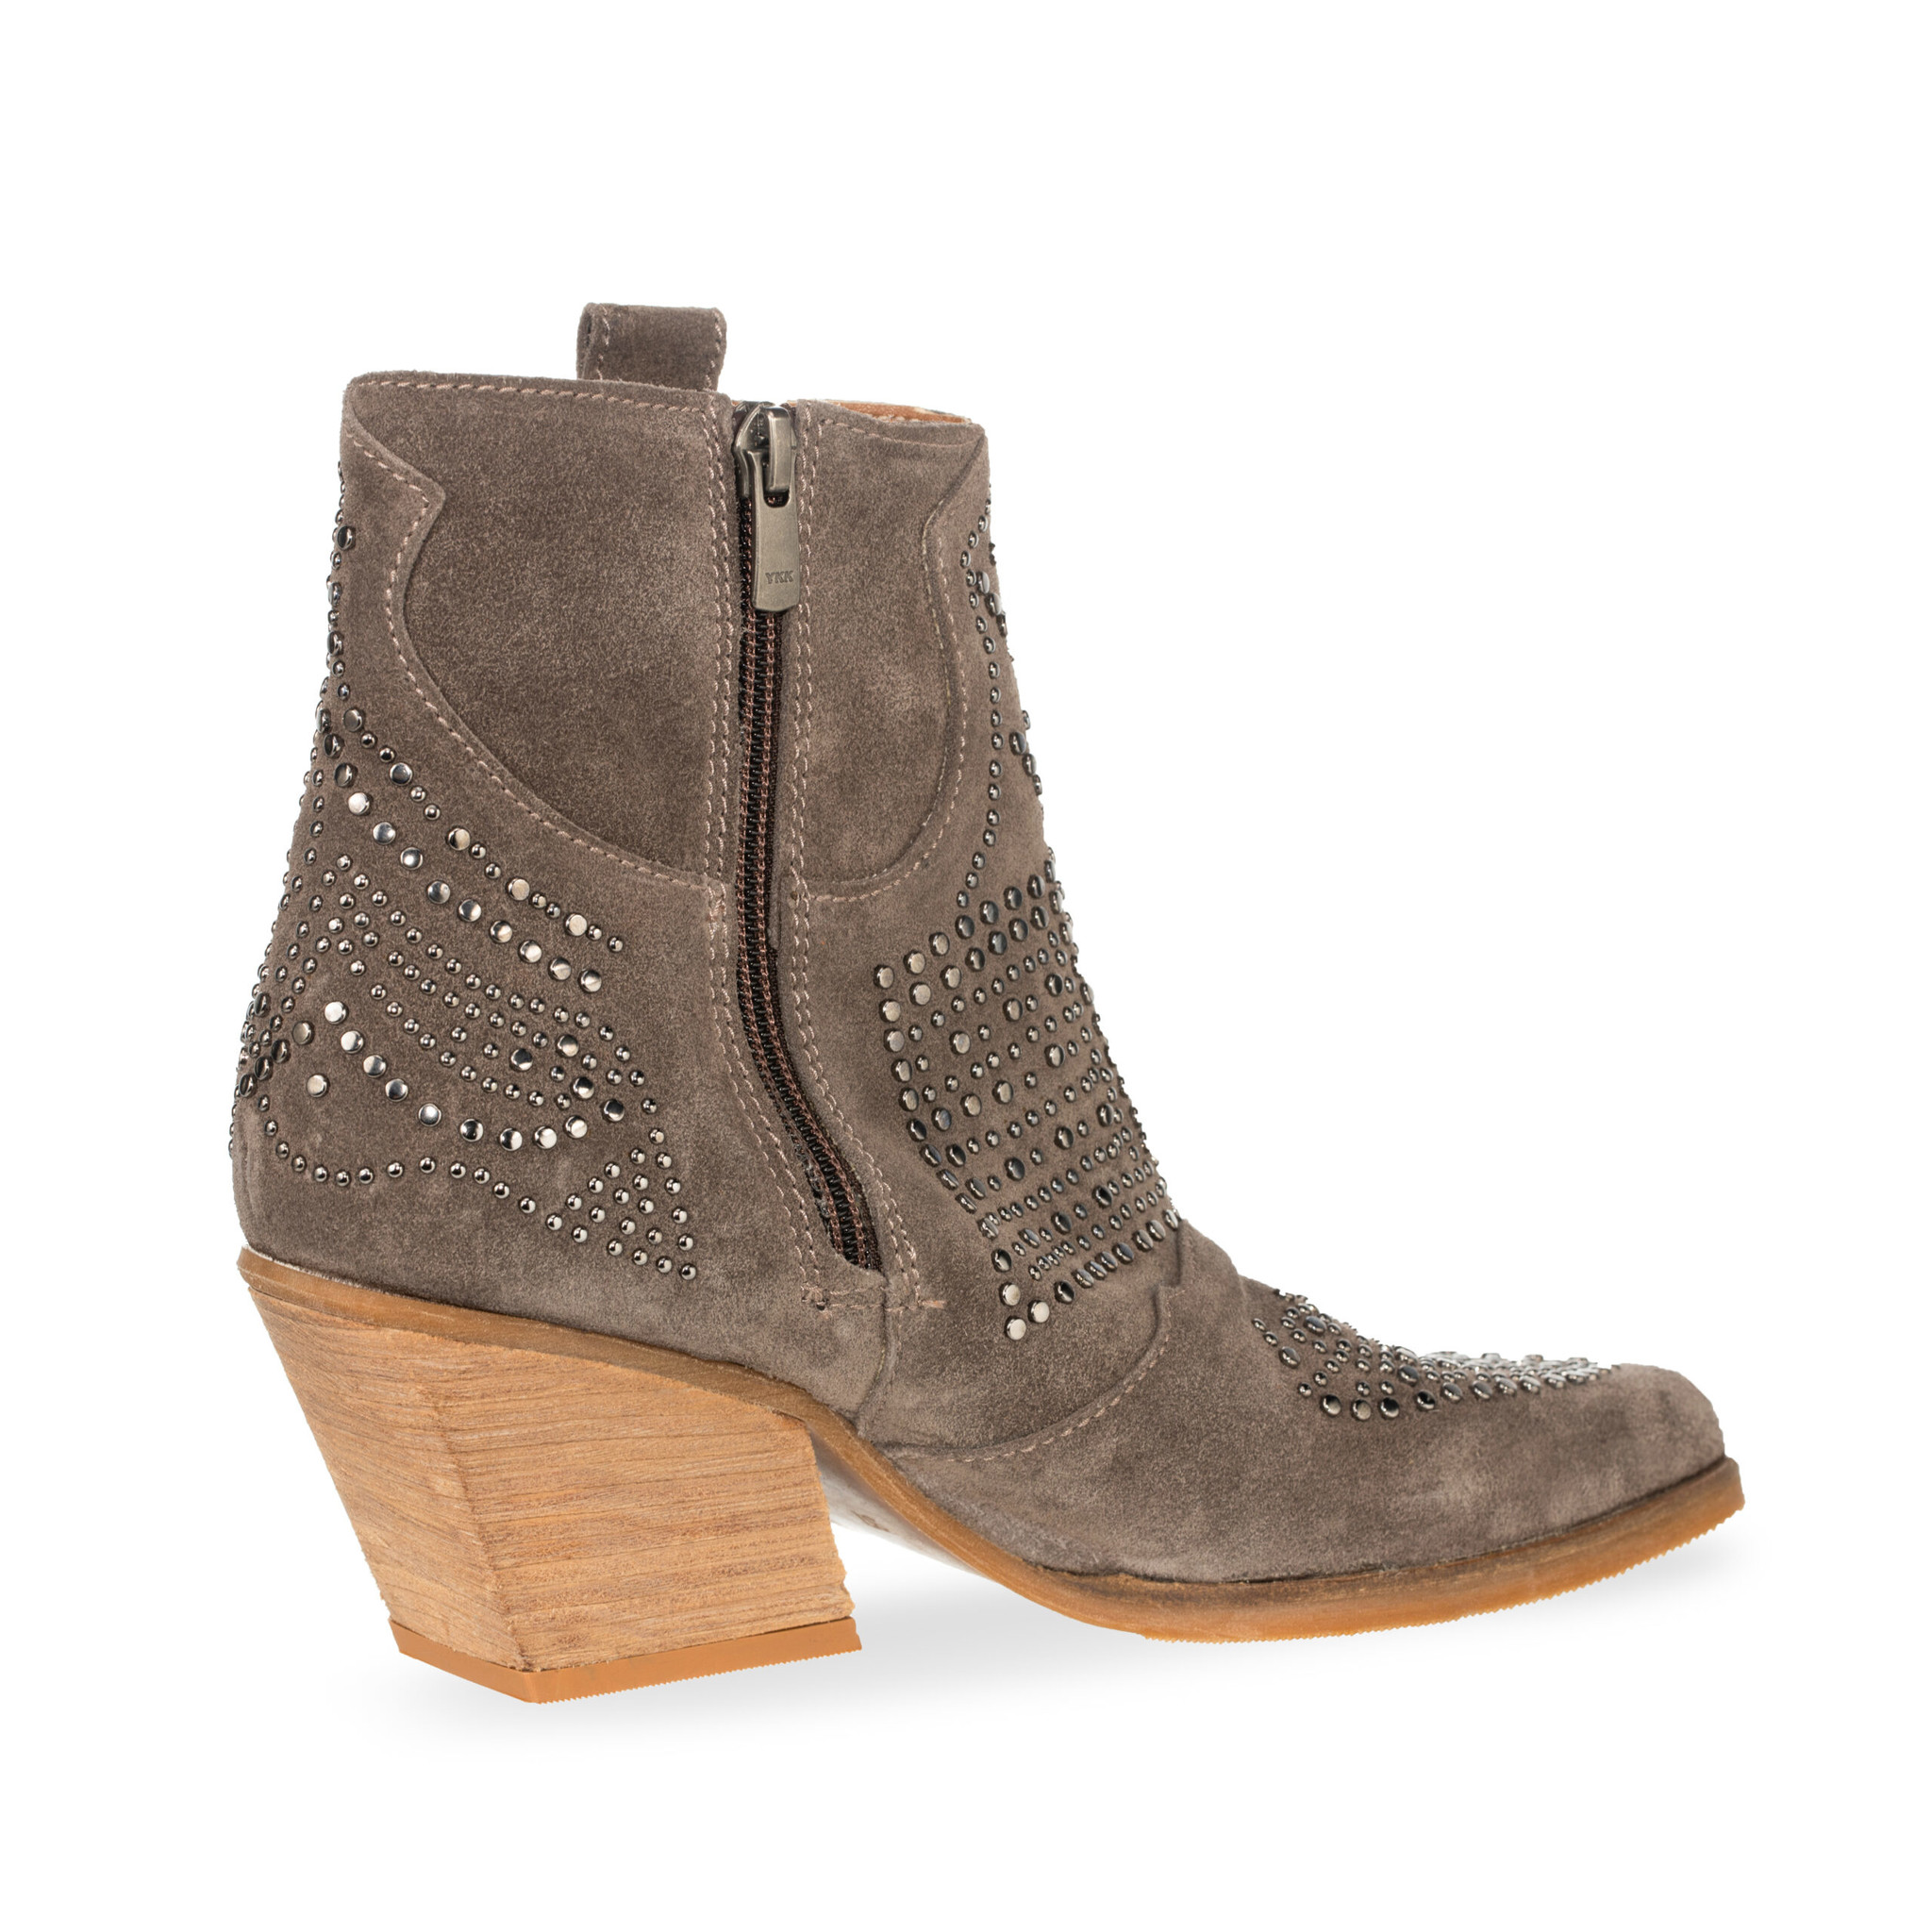 BB Boots Studs Taupe